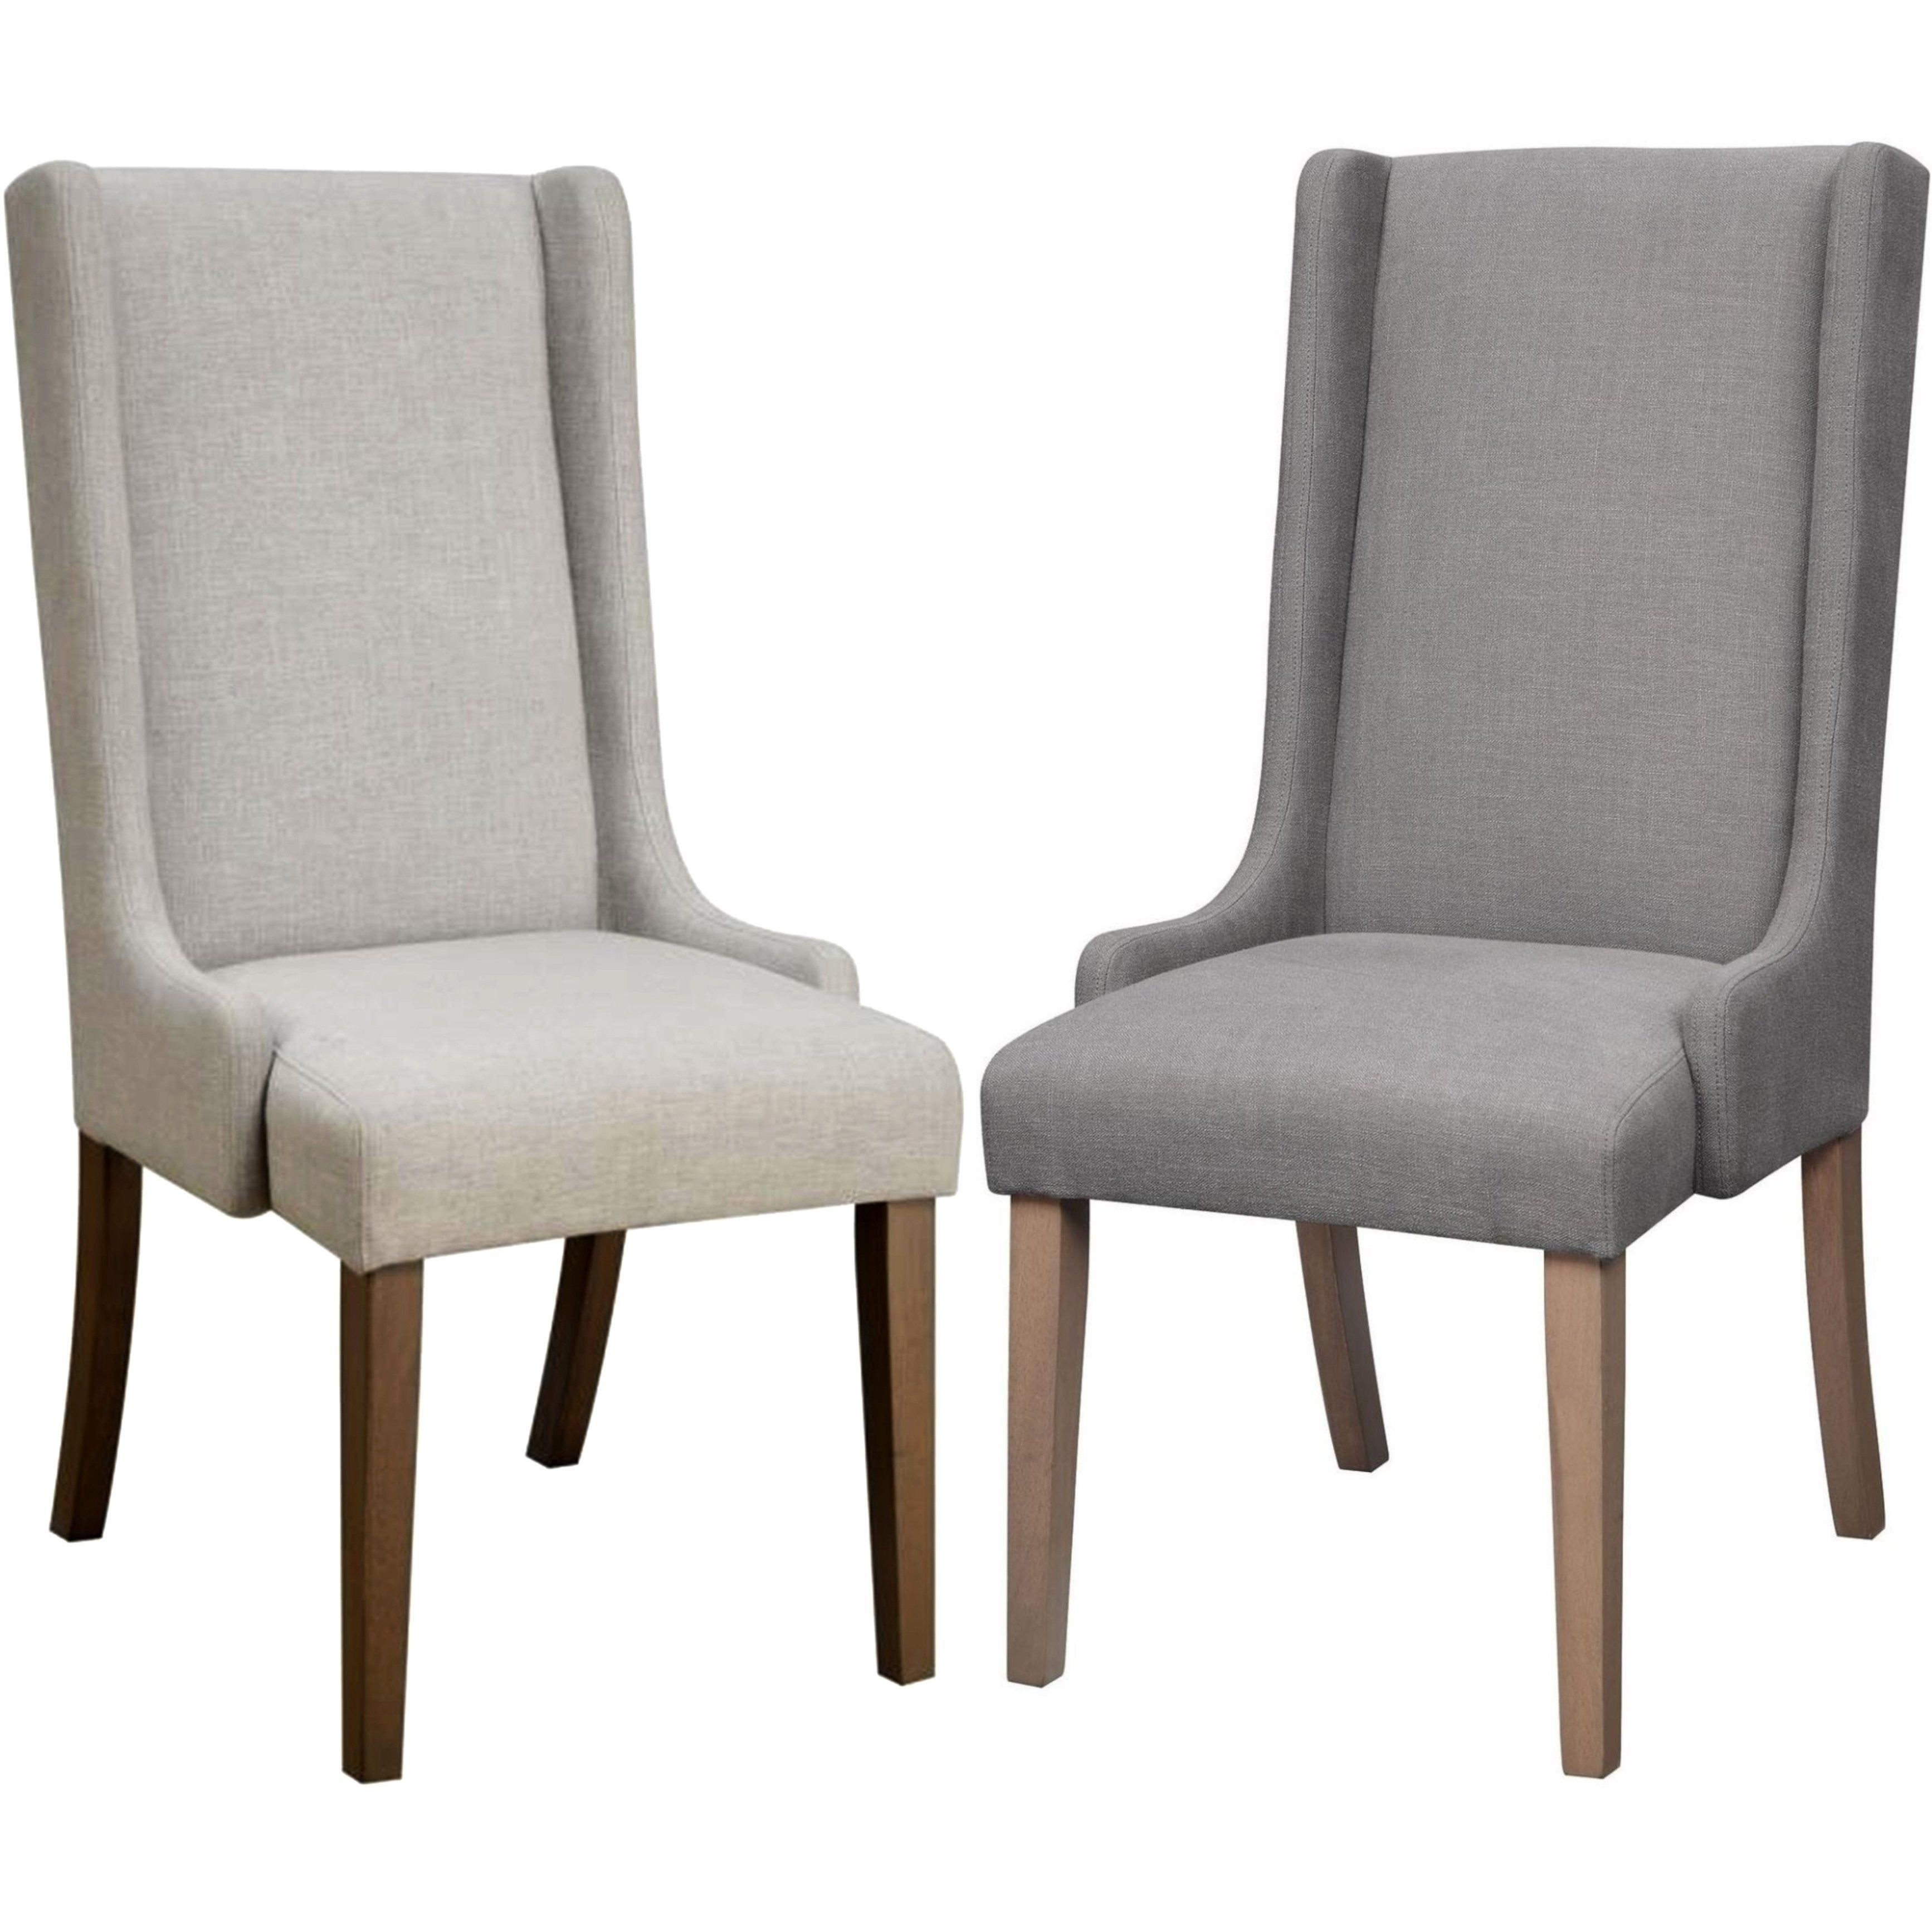 Mid Century Design Wing Back Dining Chairs Set Of 2 Grey Set